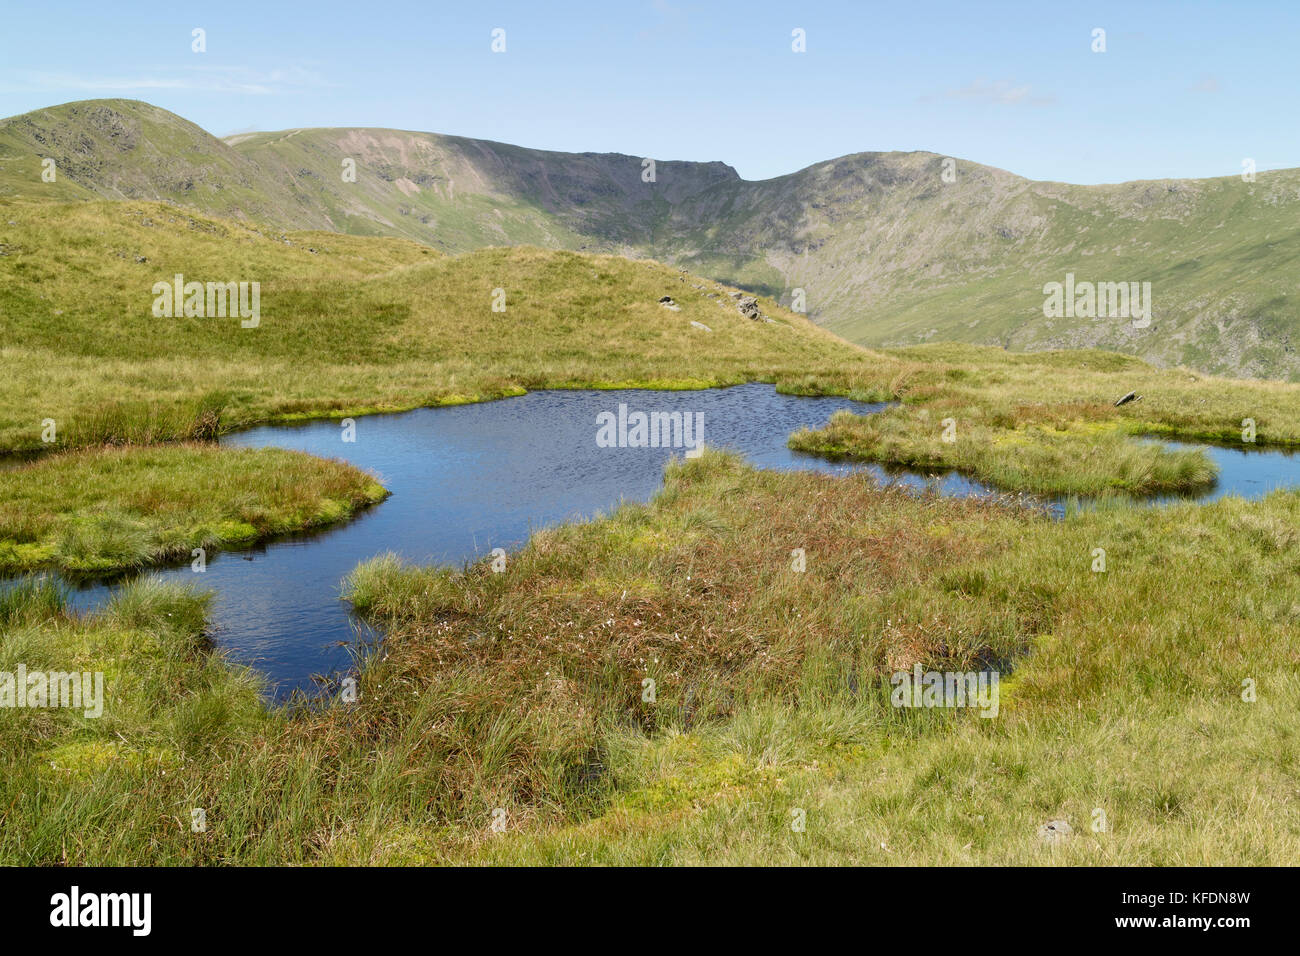 Upland peaty tarn on Fairfield, Lake District, UK - Stock Image